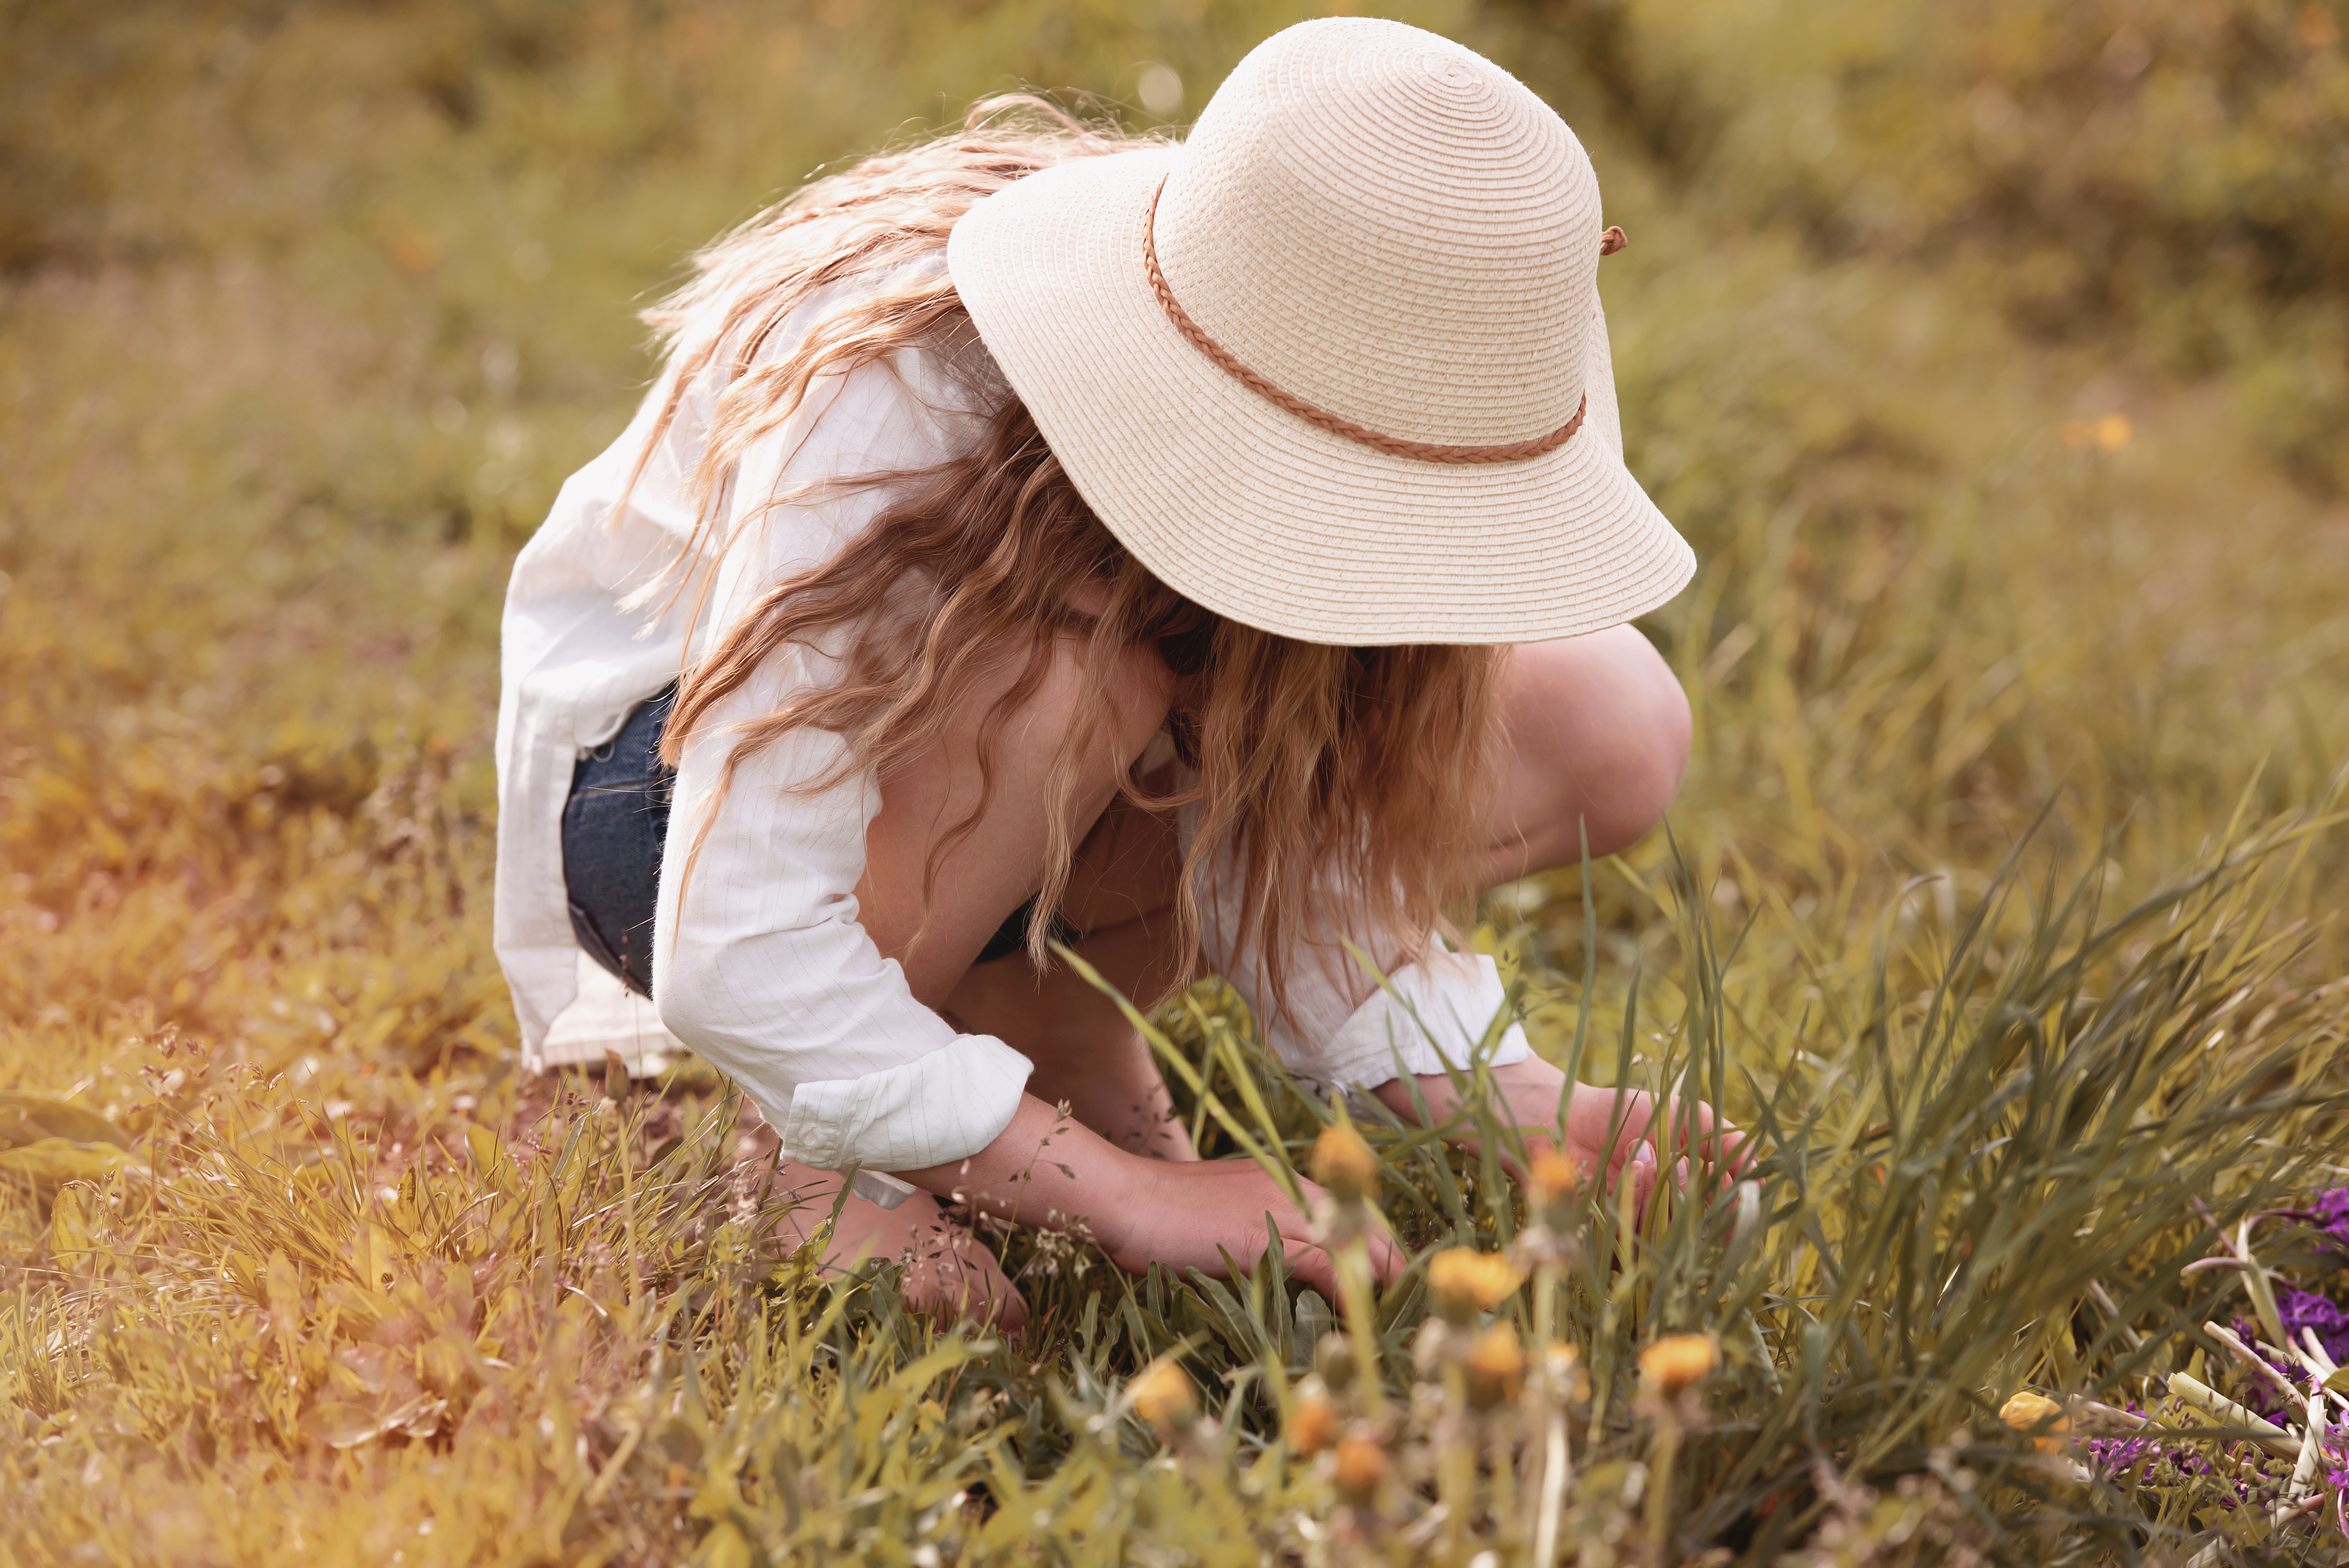 Collecting Flowers, Activity, Blonde, Collect, Field, HQ Photo